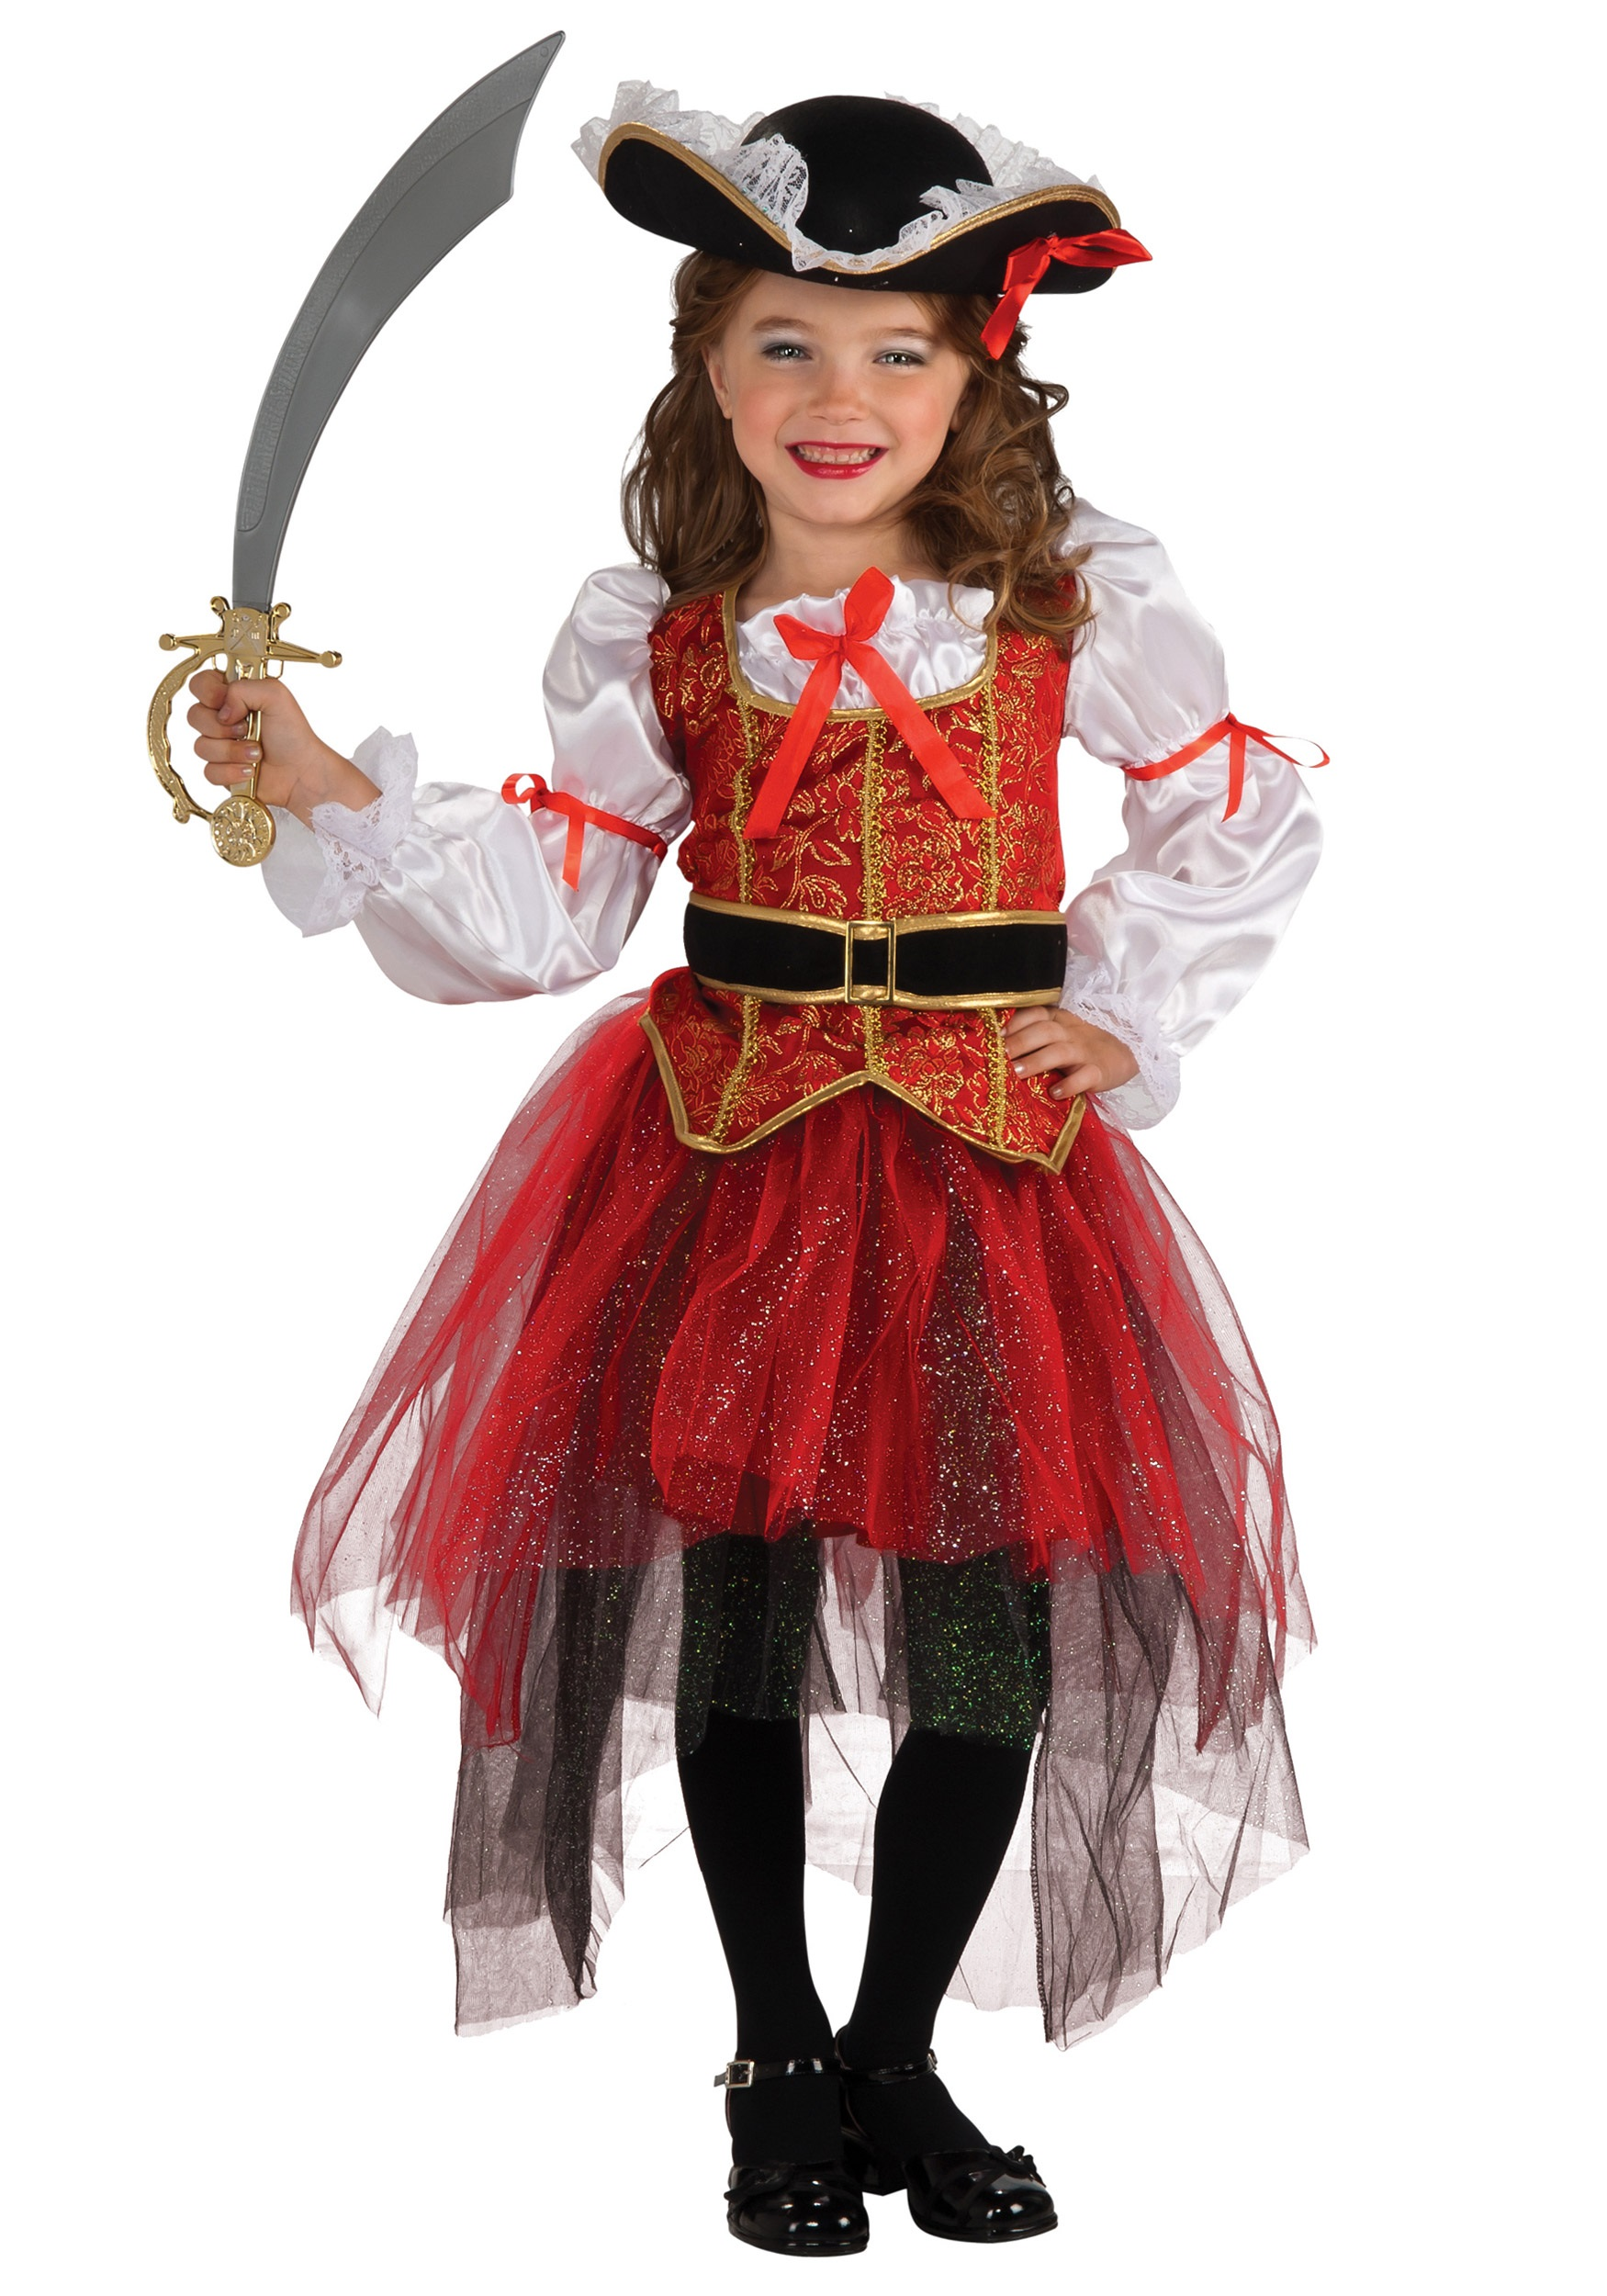 pirate halloween costume ideas on Halloween Costume Ideas Pirate Costume Ideas Child Pirate Costumes